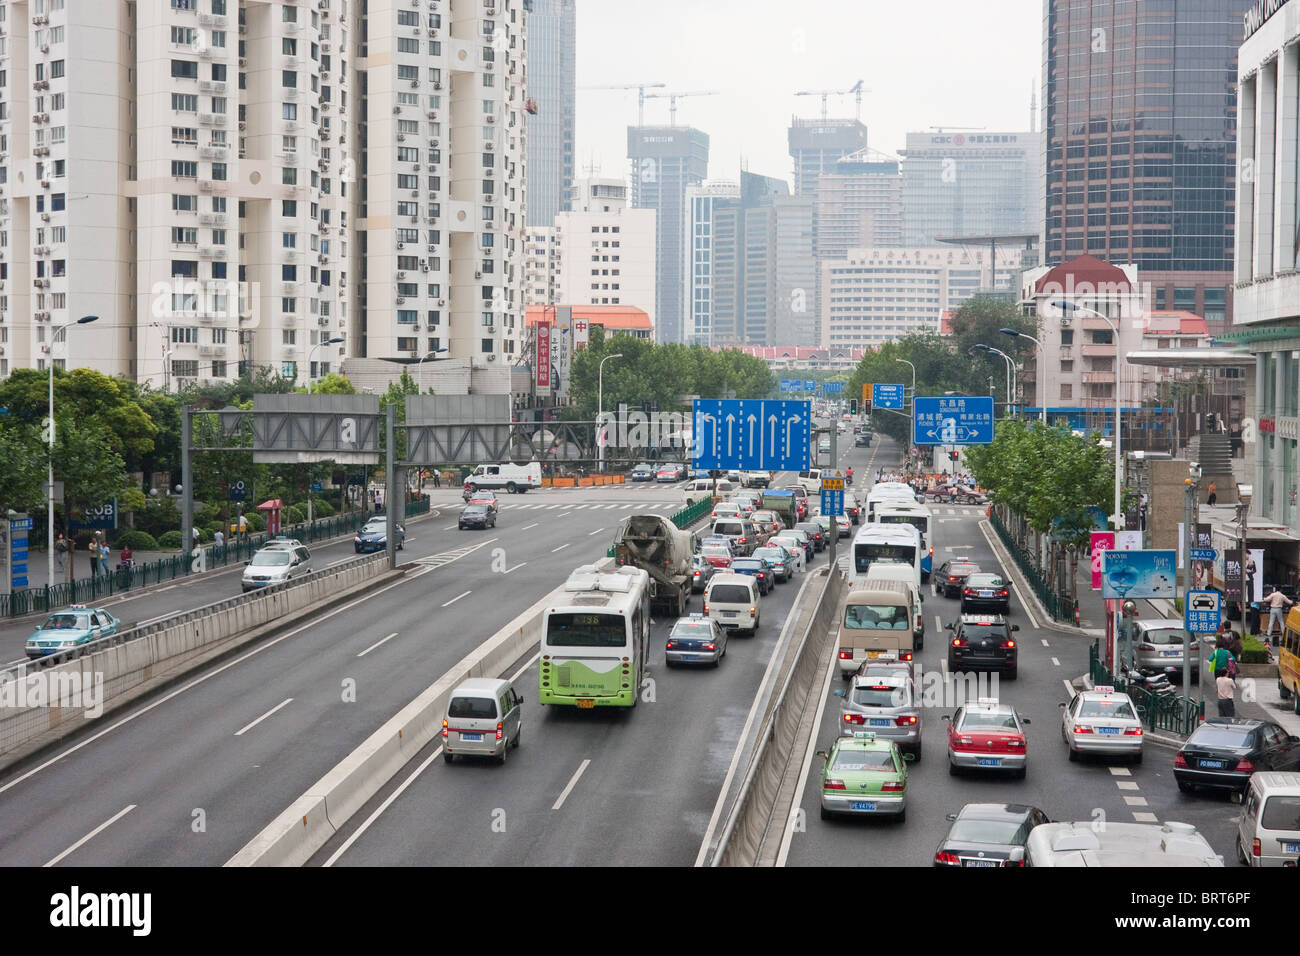 Wide streets with traffic congestion in Pudong, Shanghai China - Stock Image